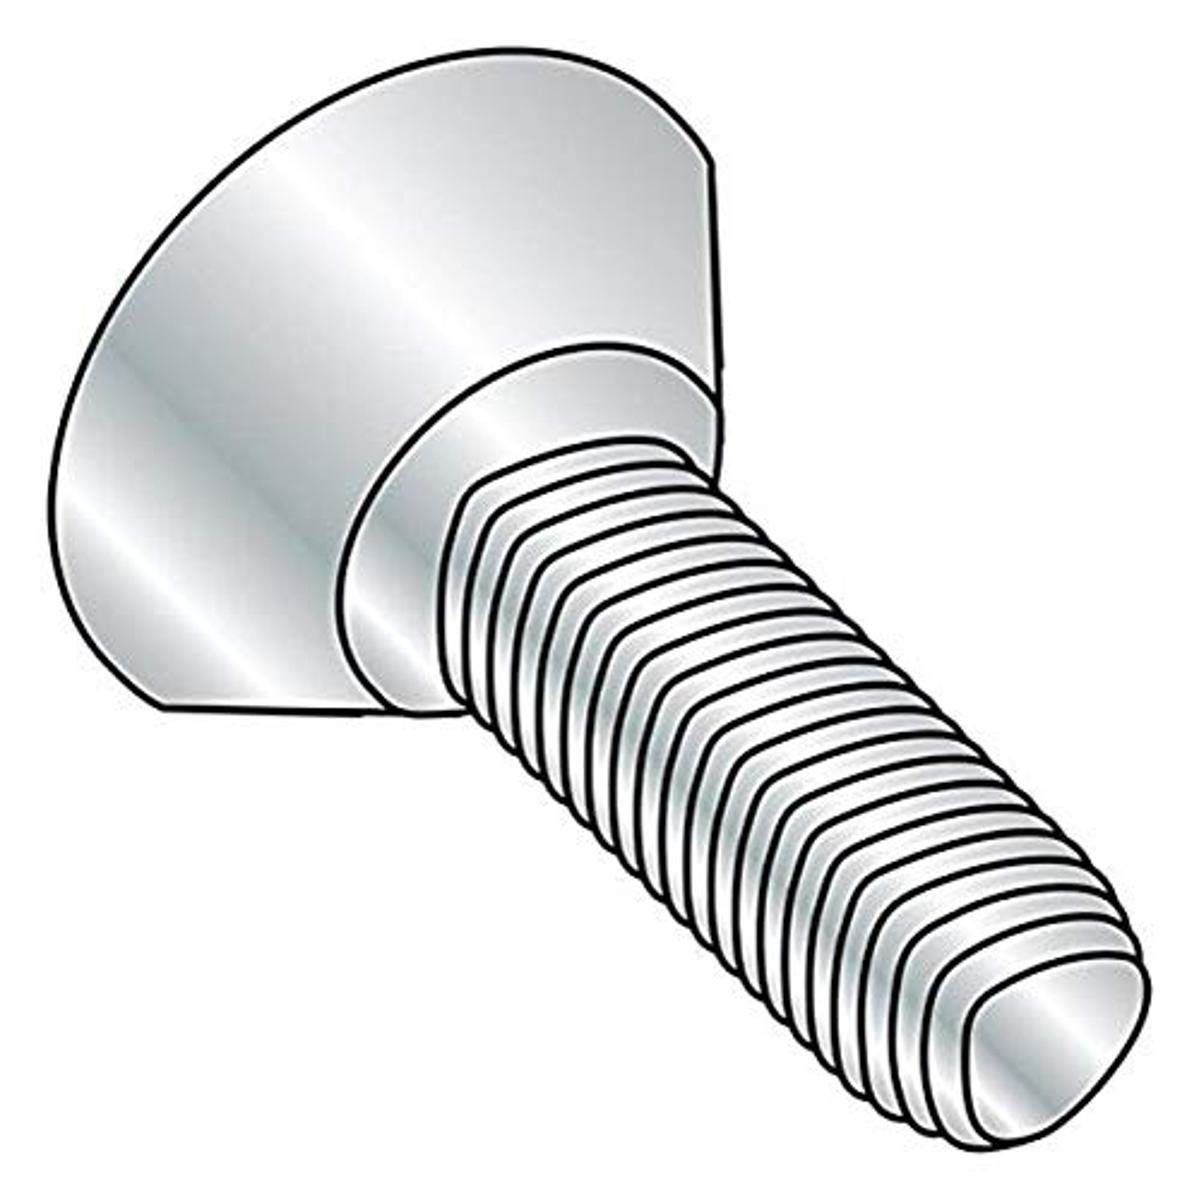 Zinc Plated #12-24 Thread Size 82 Degree Flat Undercut Head Steel Thread Rolling Screw for Metal Pack of 100 Phillips Drive 3//4 Length